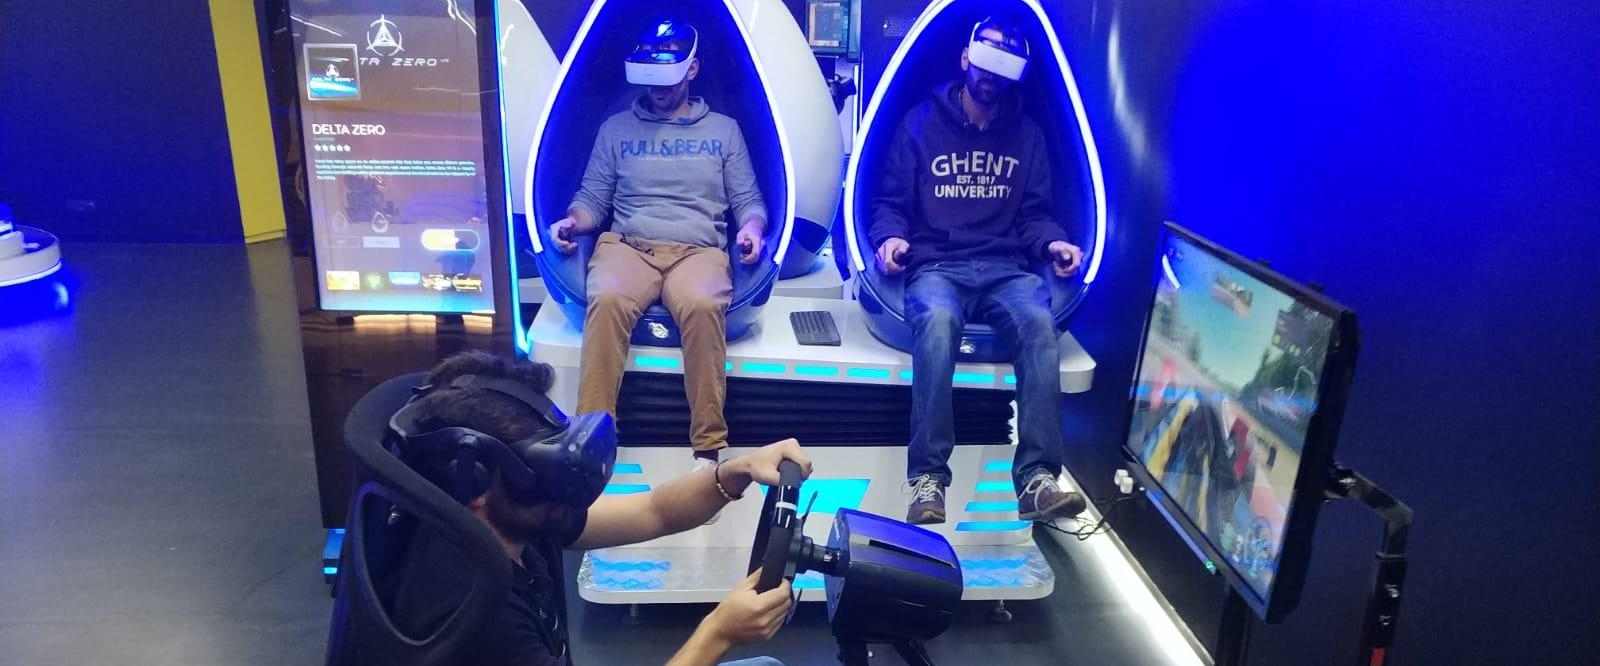 Immotion VR Parque Rioja Xperience